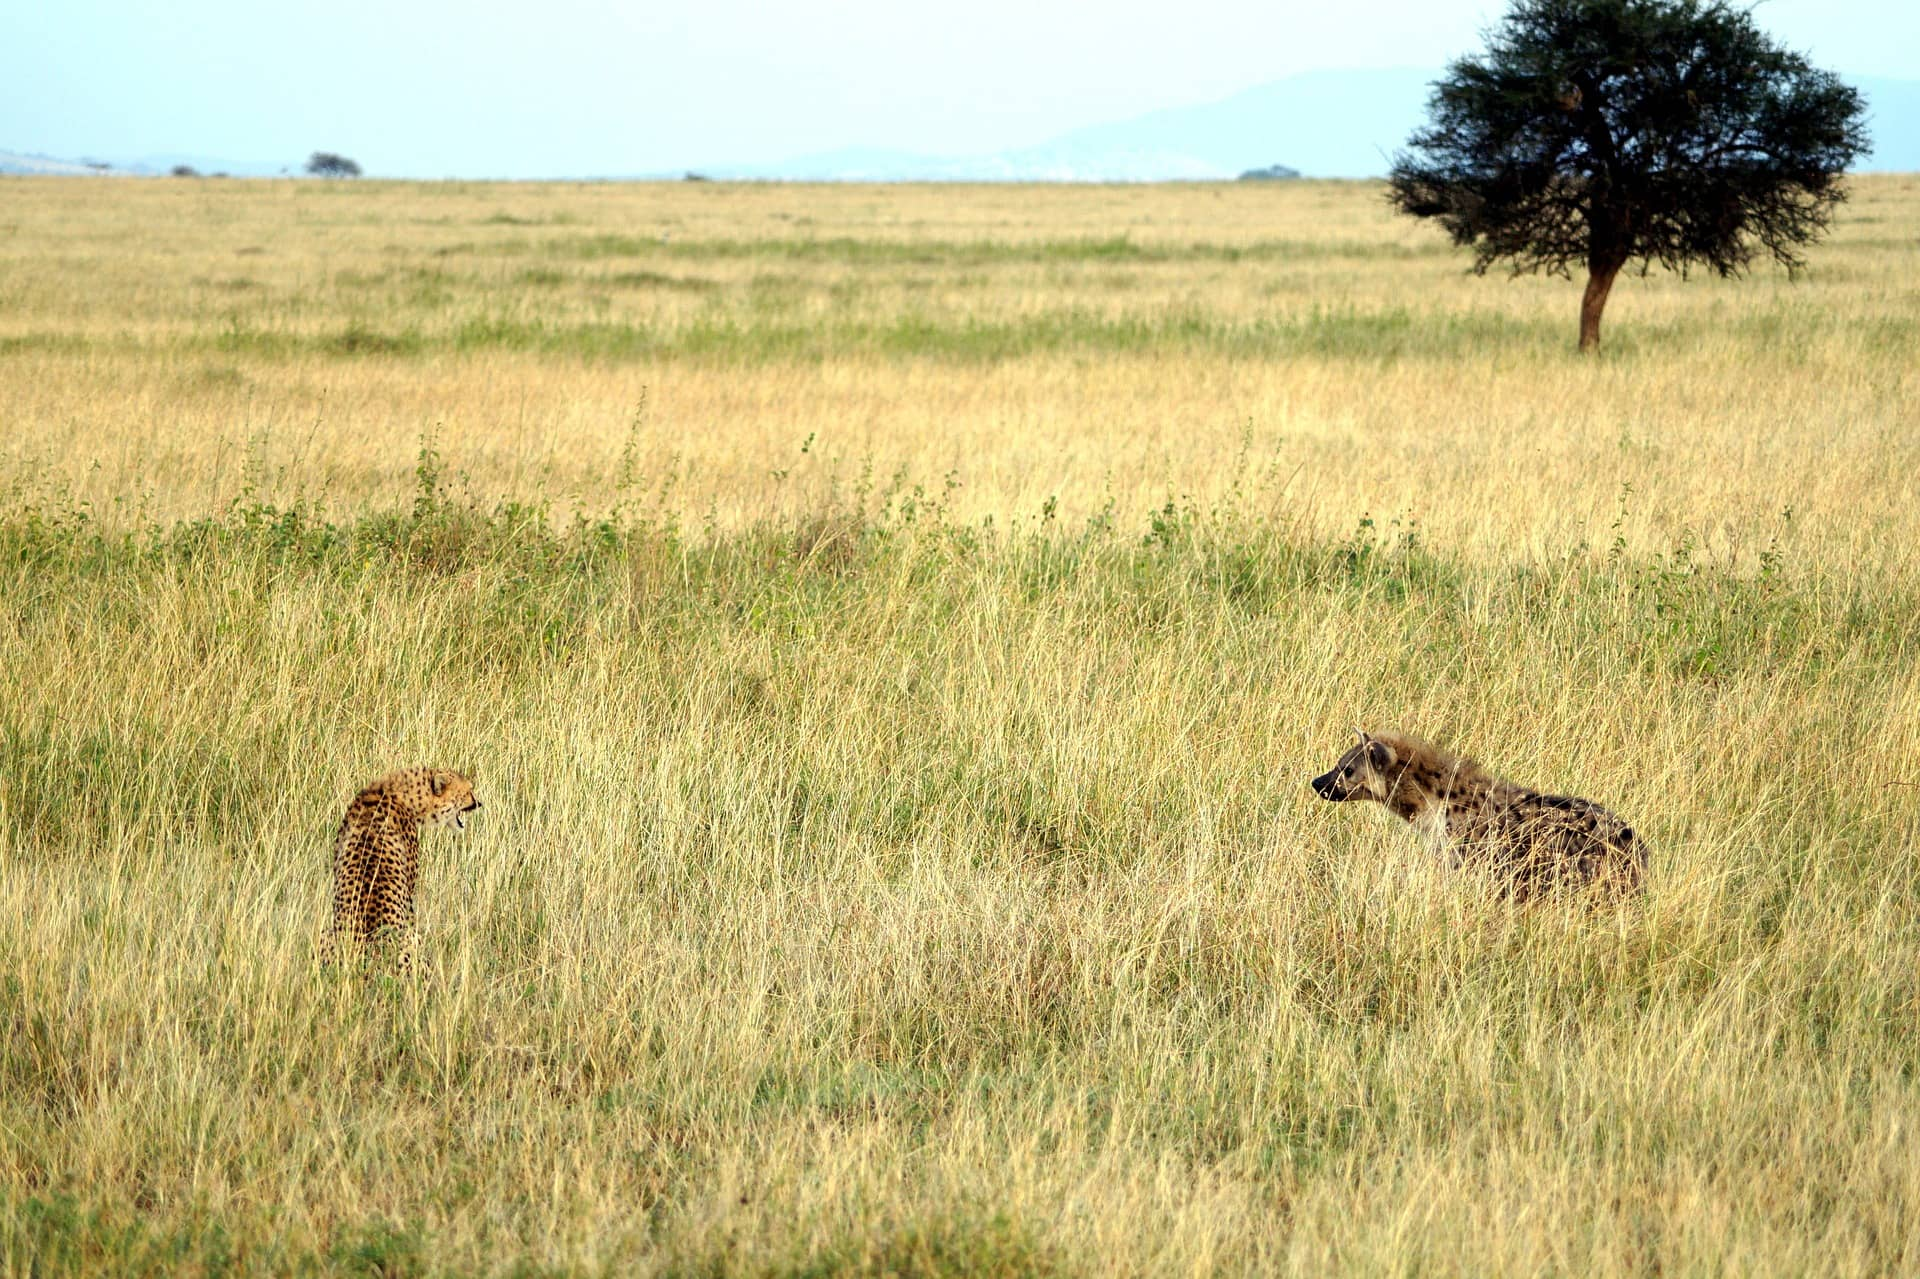 cheetah facts for kids